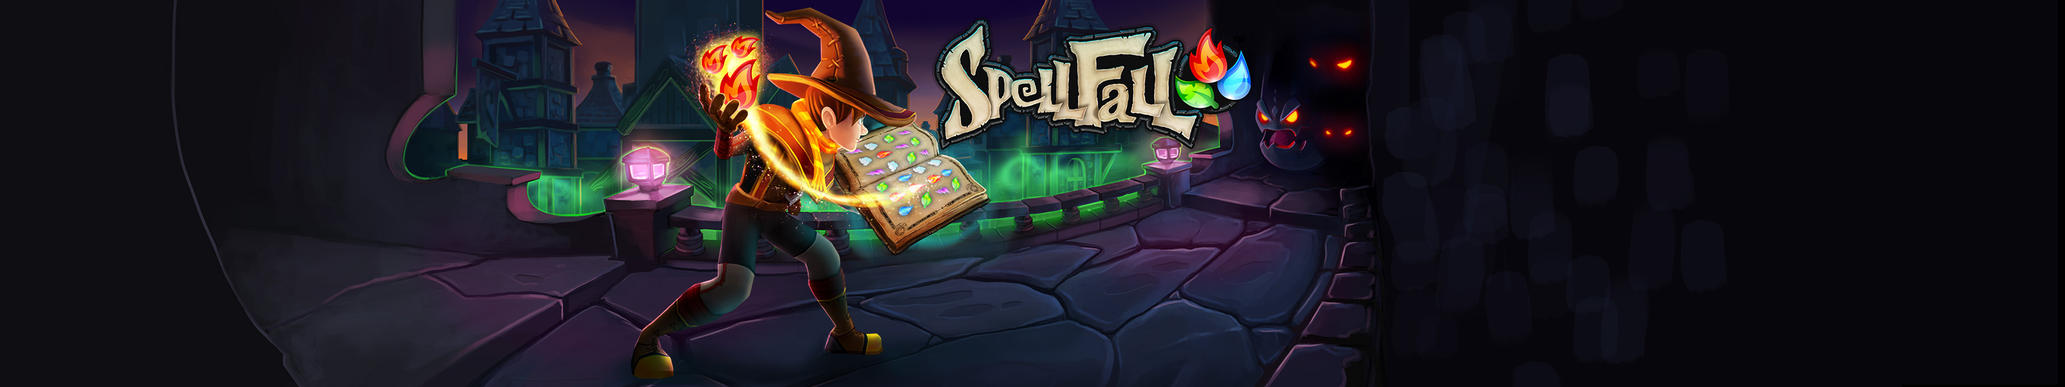 BackflipStudios SpellFall Final Aug2014 Background by JoeyJulian